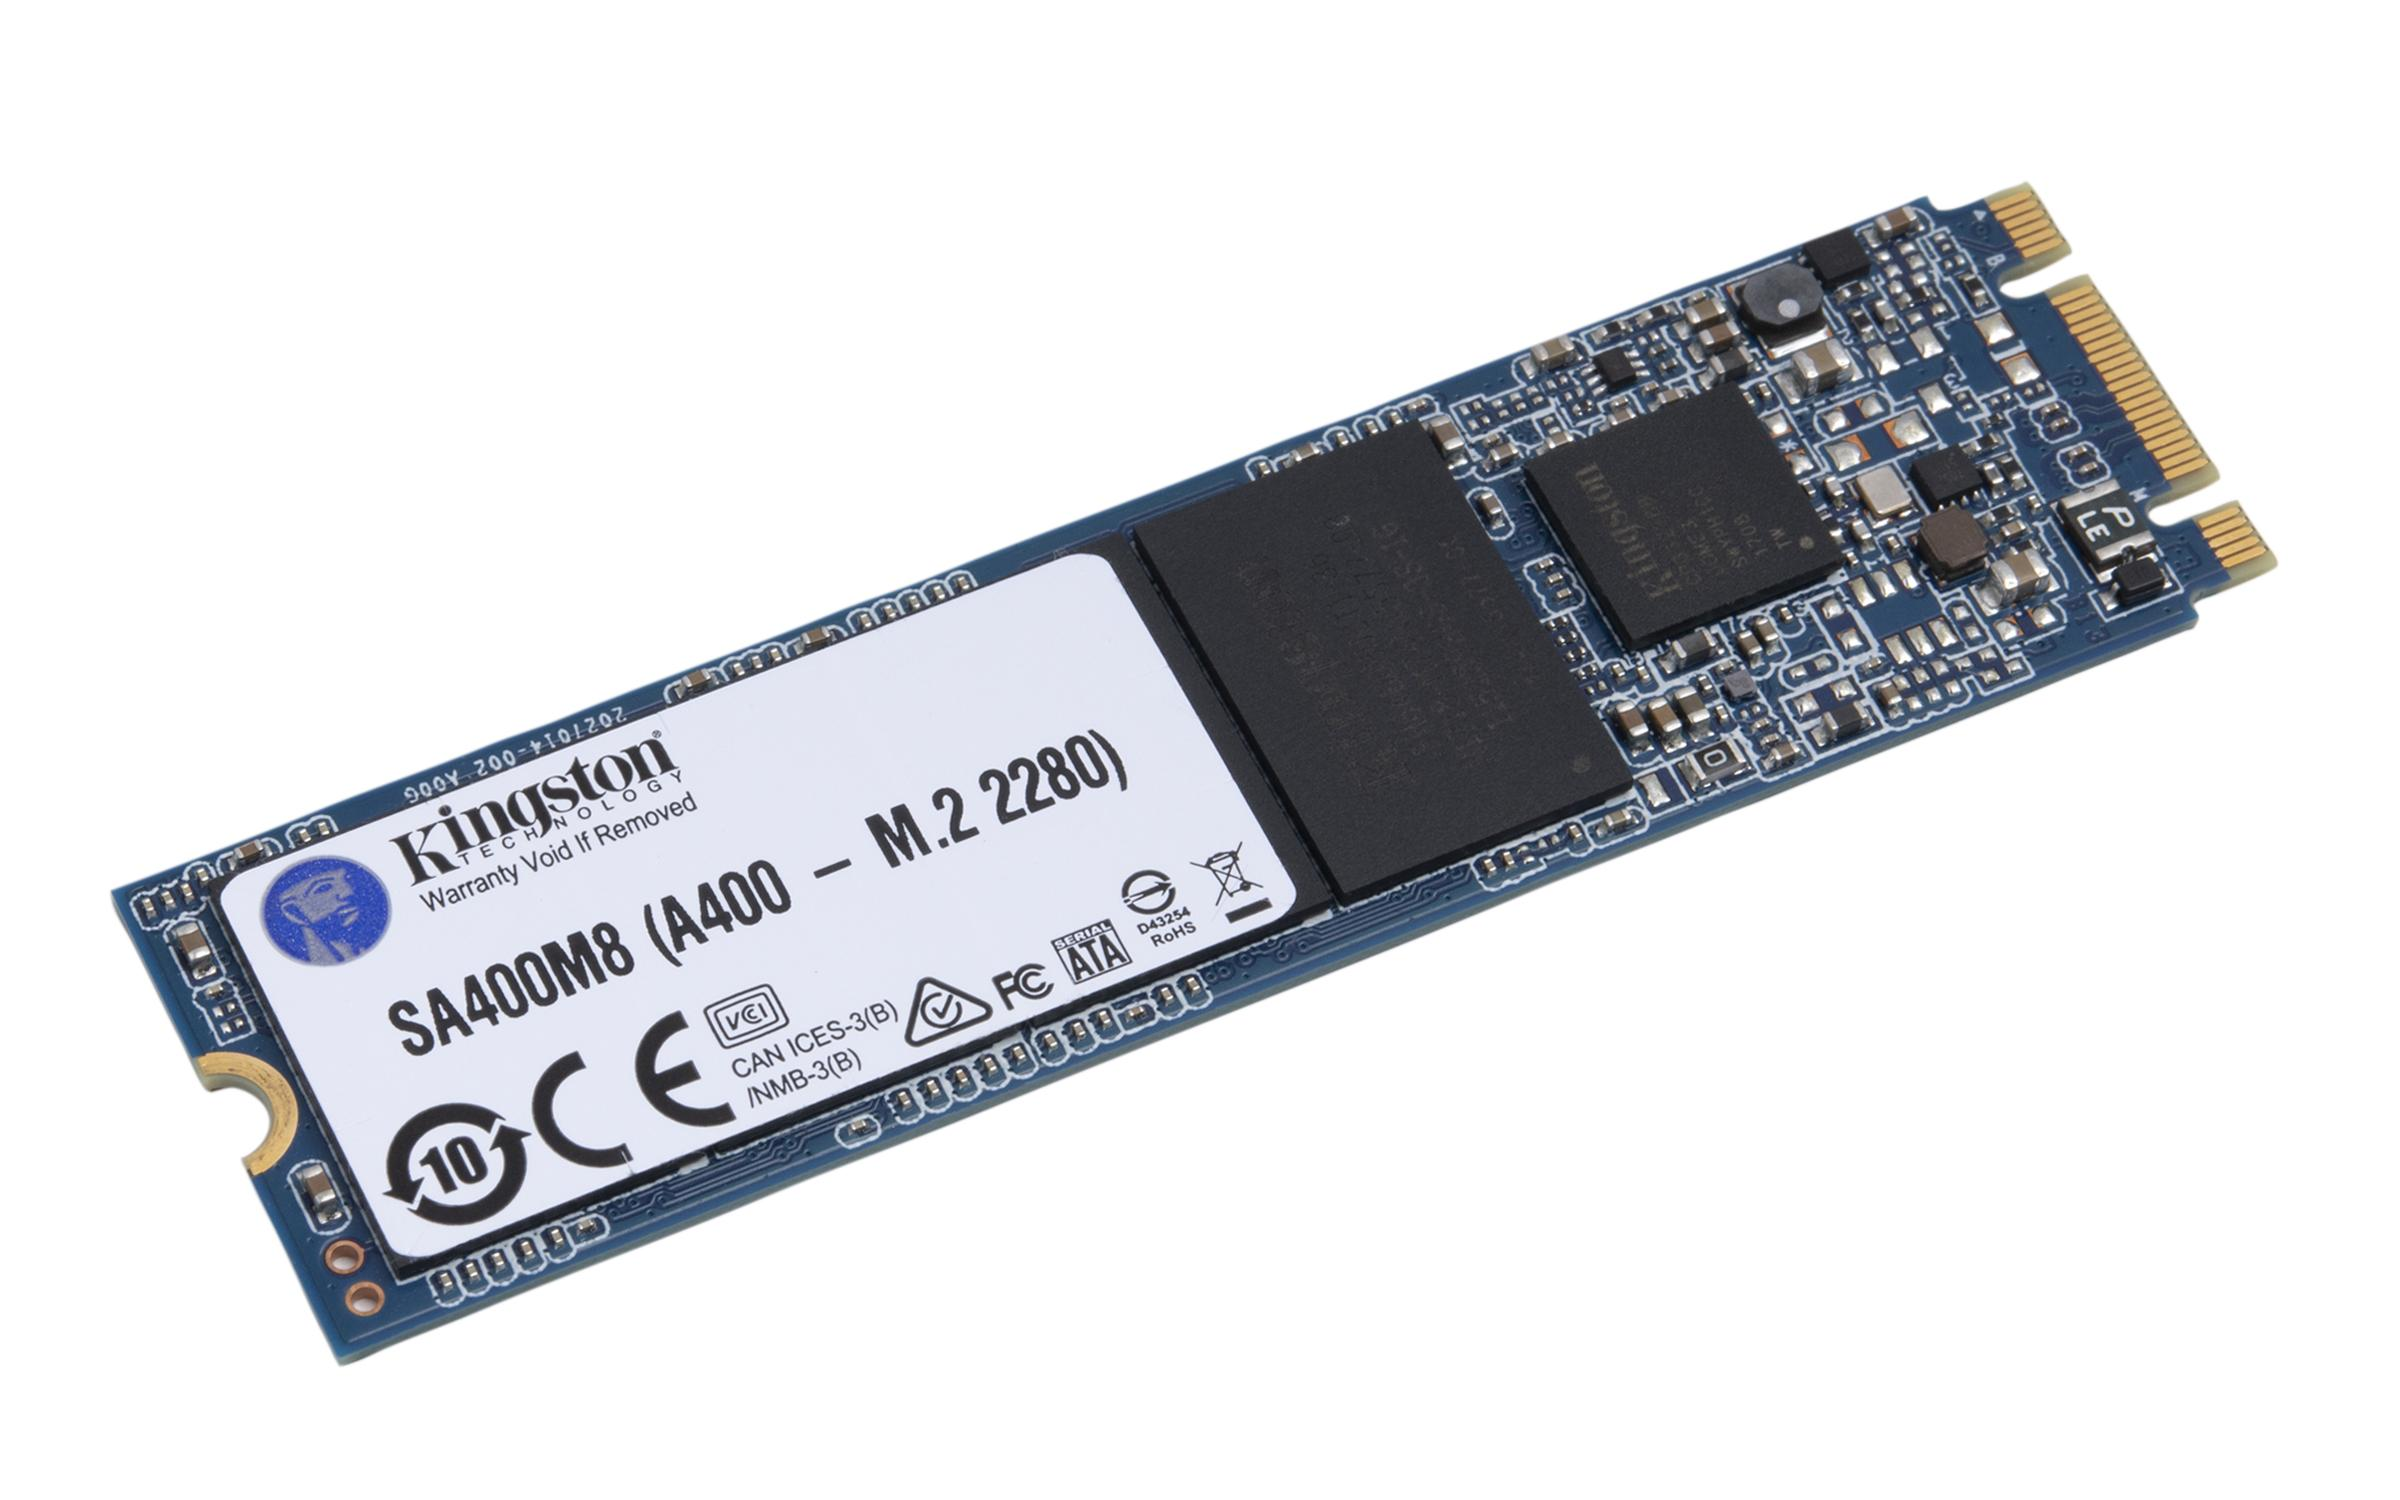 Solid State Drive (SSD) KINGSTON A400, m.2 2280, 480GB